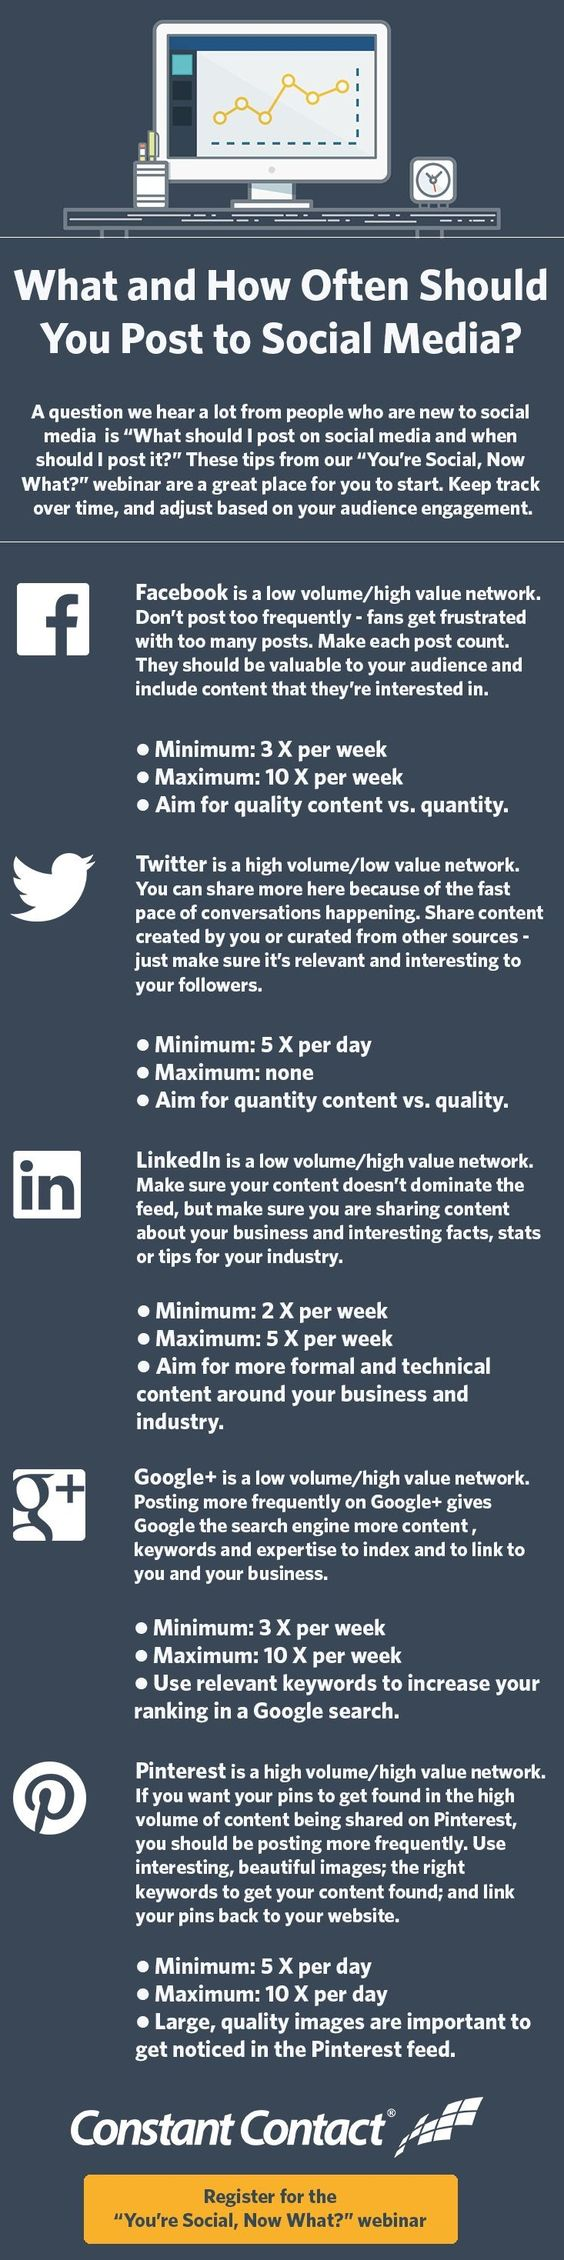 #SocialMedia Content Sharing Strategies - How Often Should You Post to #Facebook, #Twitter, #Pinterest, #GooglePlus - #infographic: